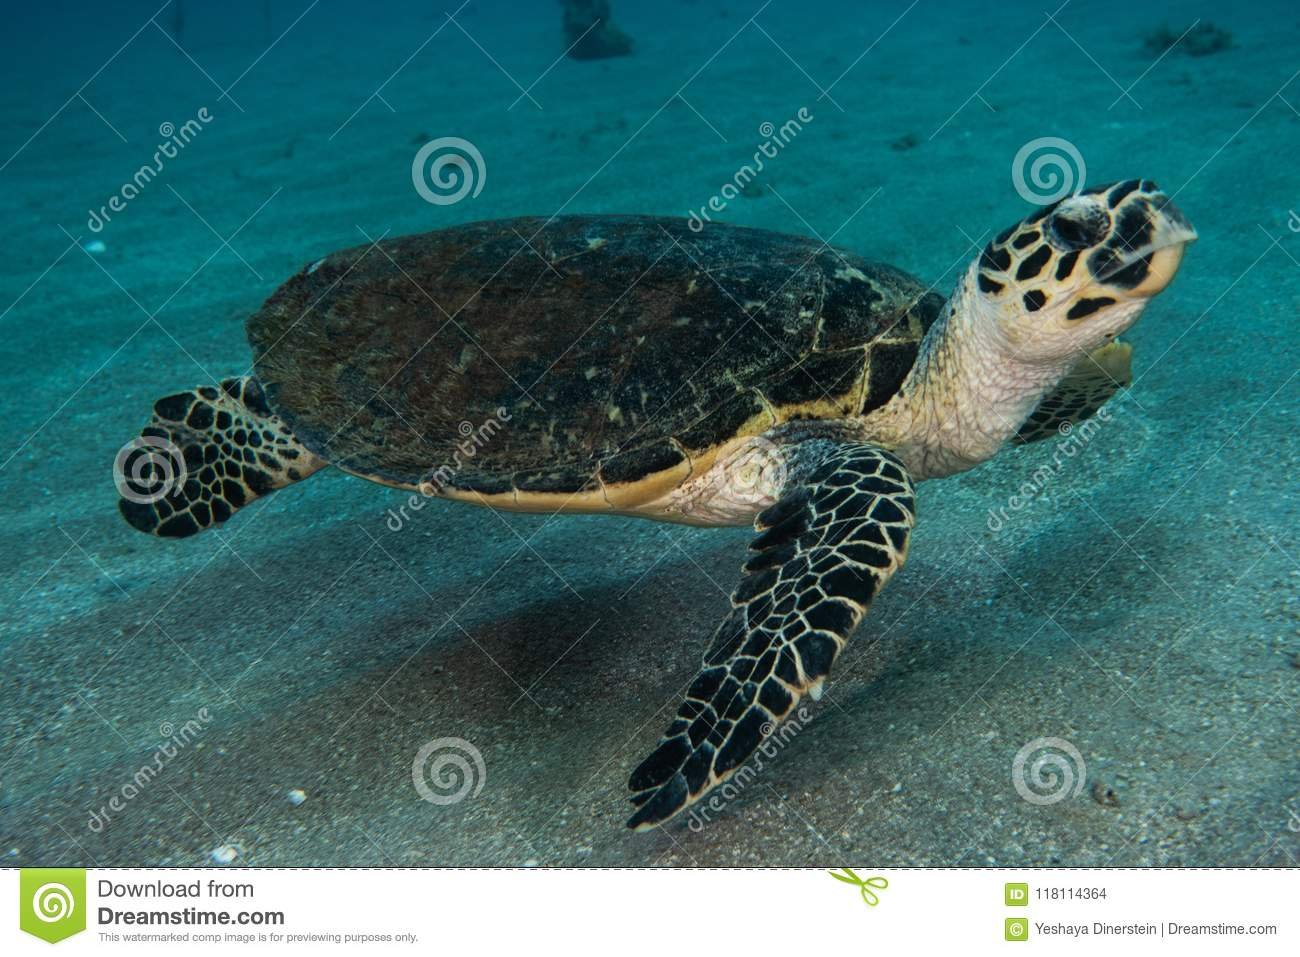 Giant Green Sea Turtles in the Red Sea a.e